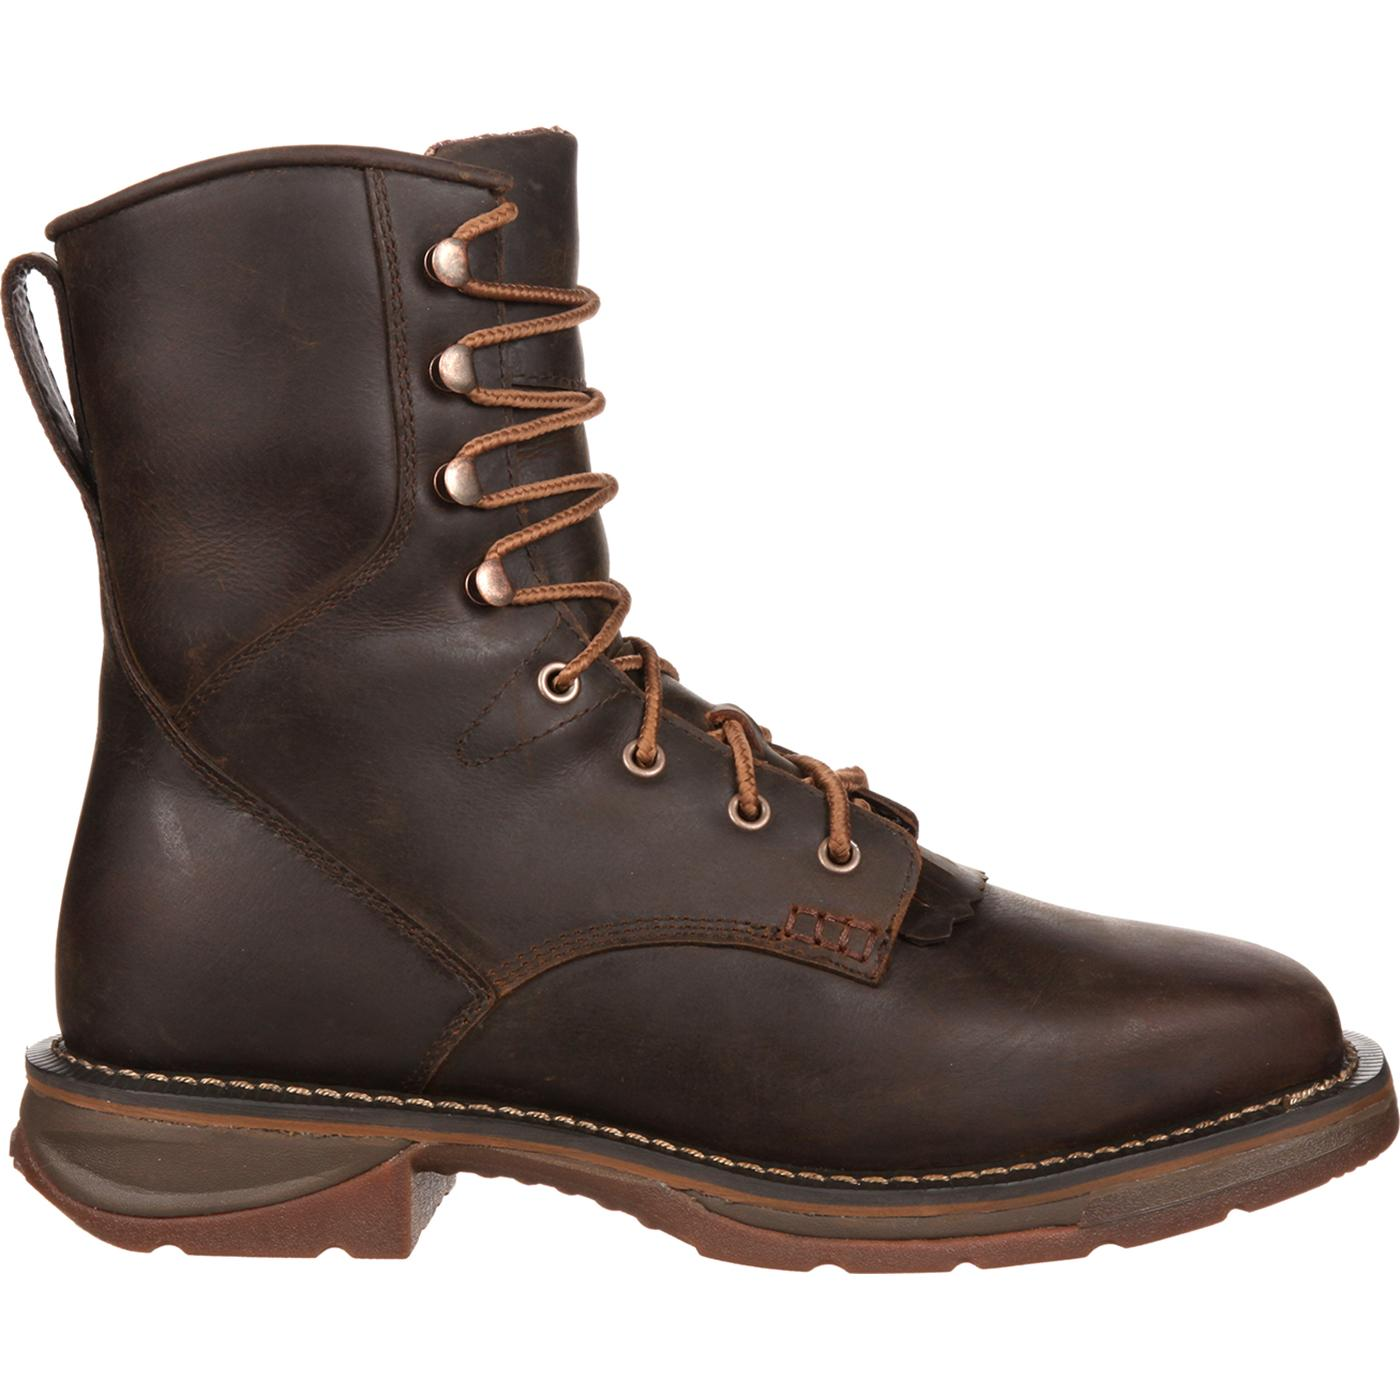 38edfb0f8c8 Workin' Rebel by Durango Steel Toe Waterproof Western Lacer Boot